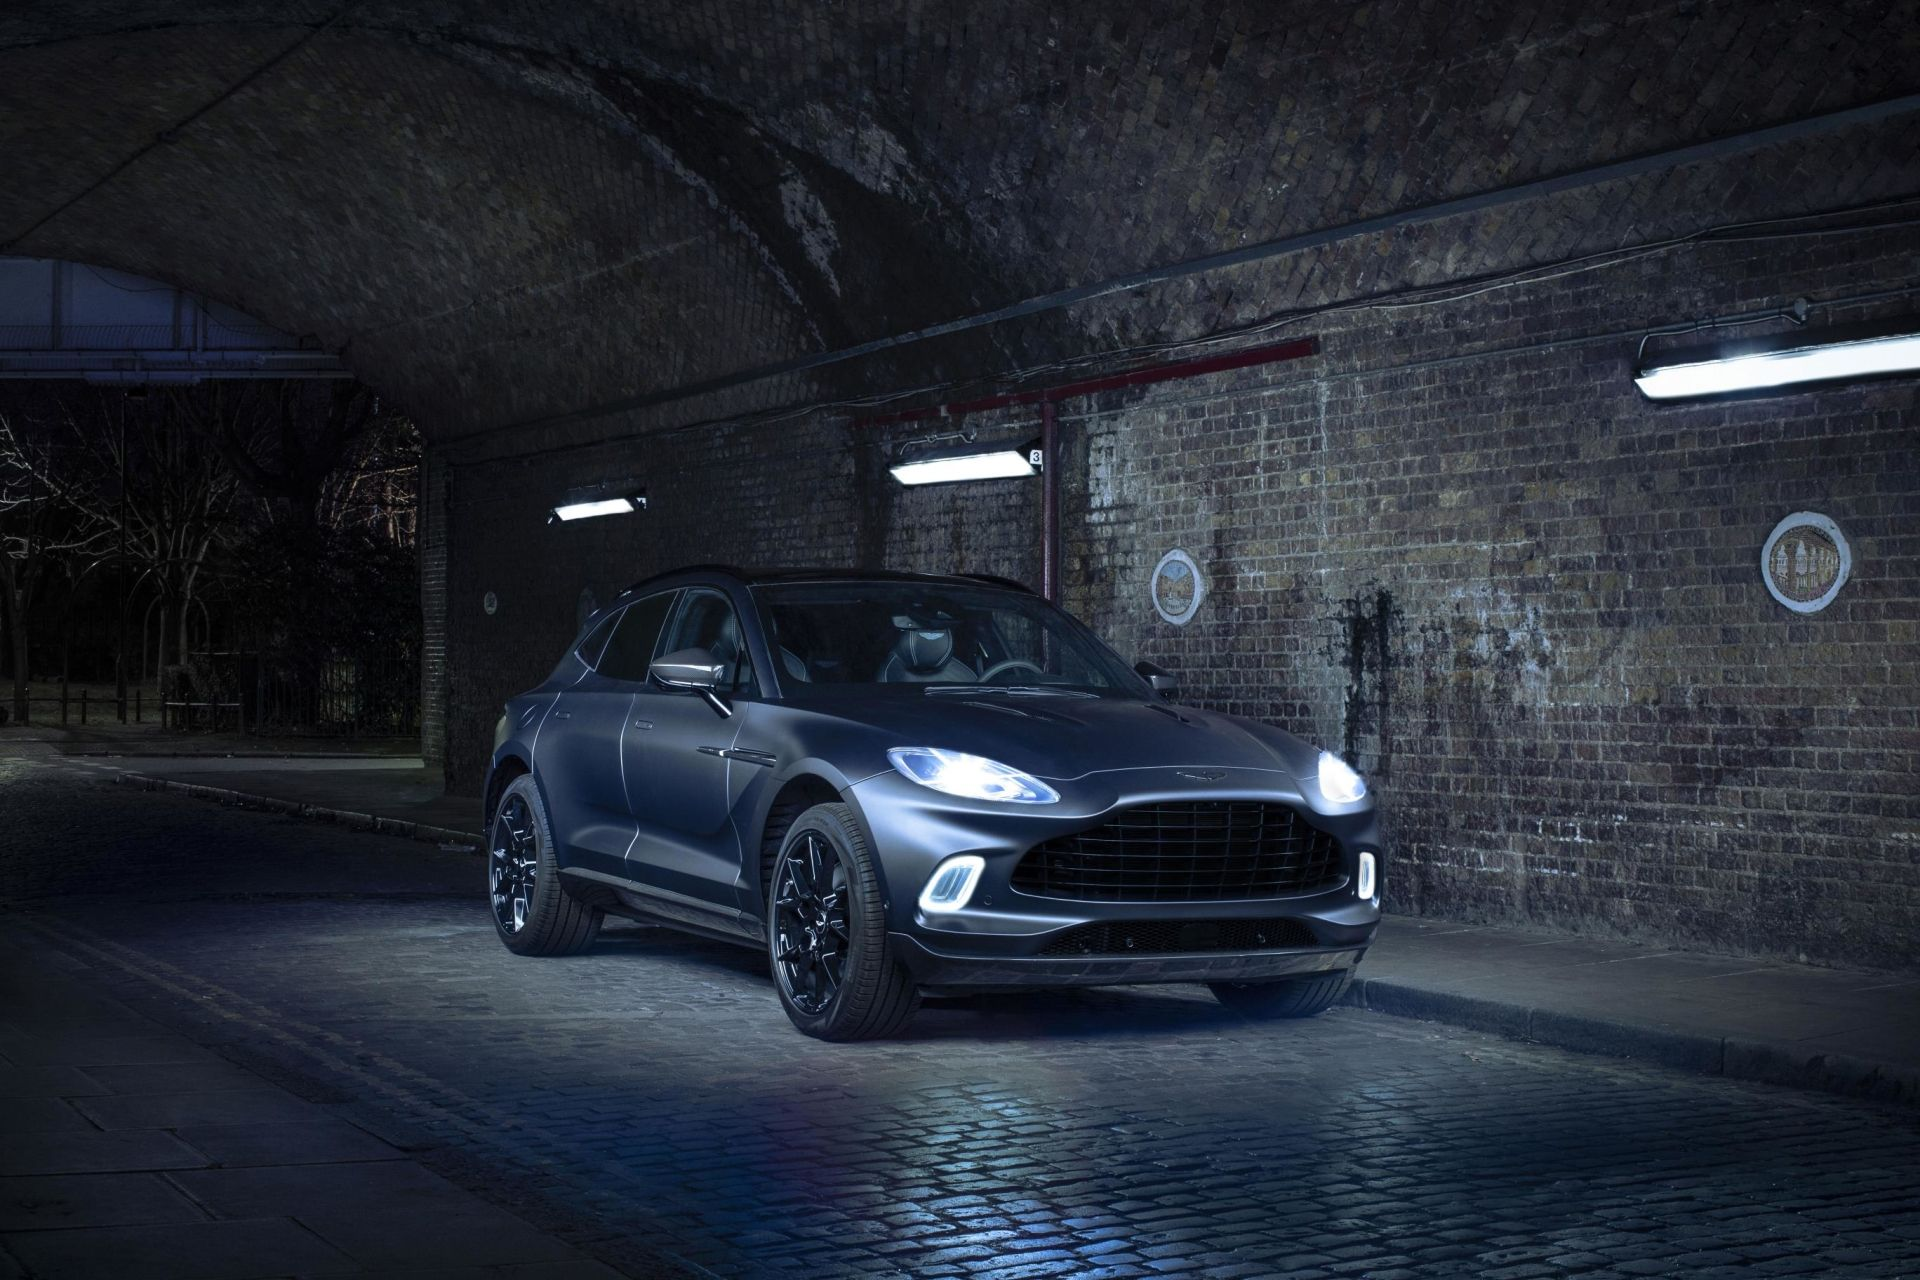 Aston Martin DBX Gets Dark, Sinister Look For Geneva Auto Show